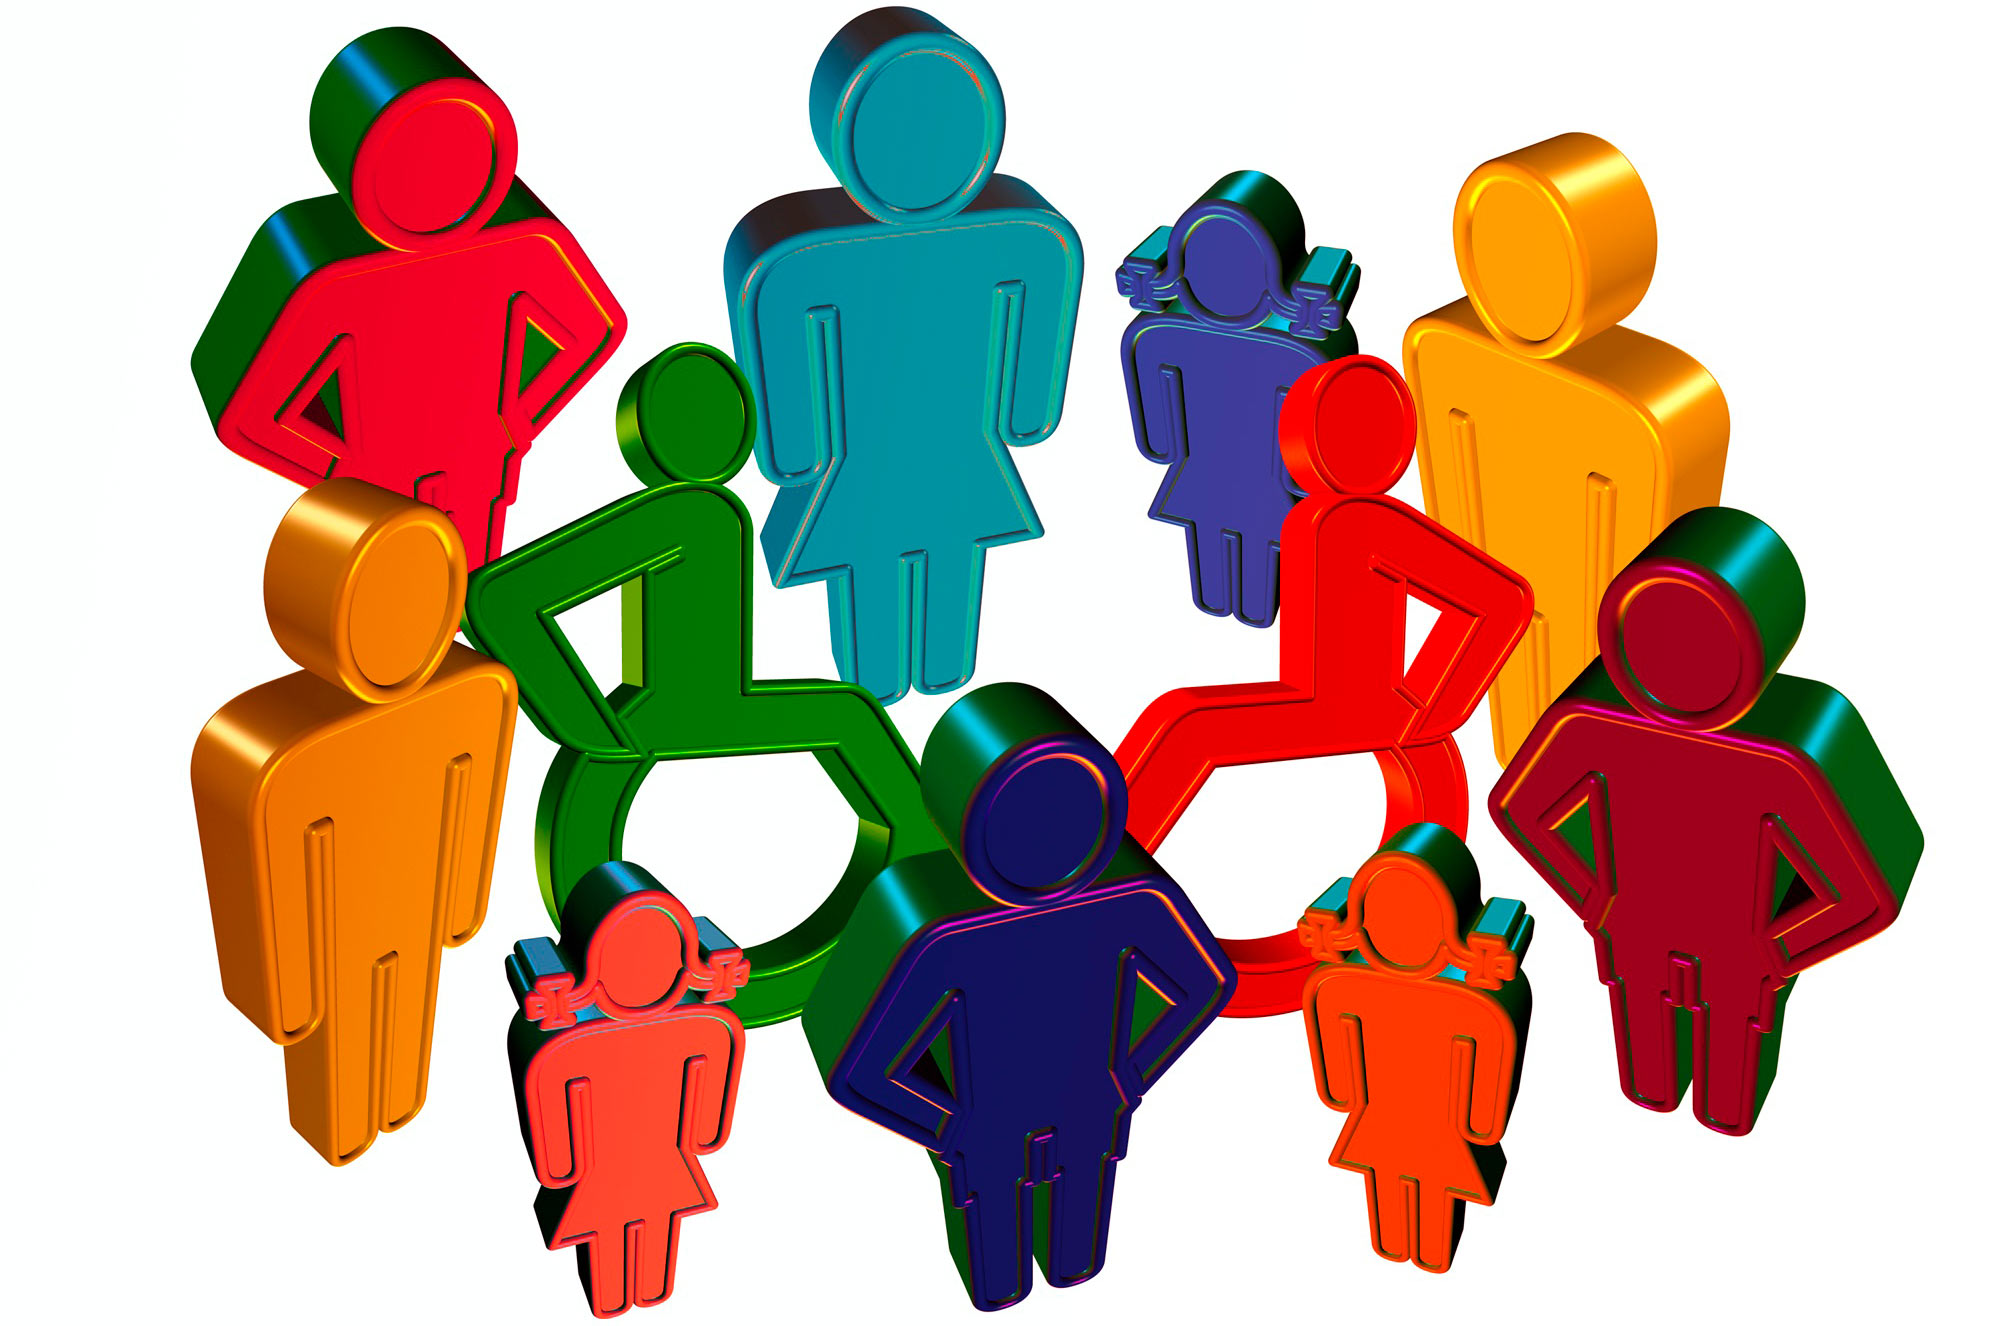 a three dimensional pictogram showing persons of different sizes and genders, some of whom are using a wheelchair